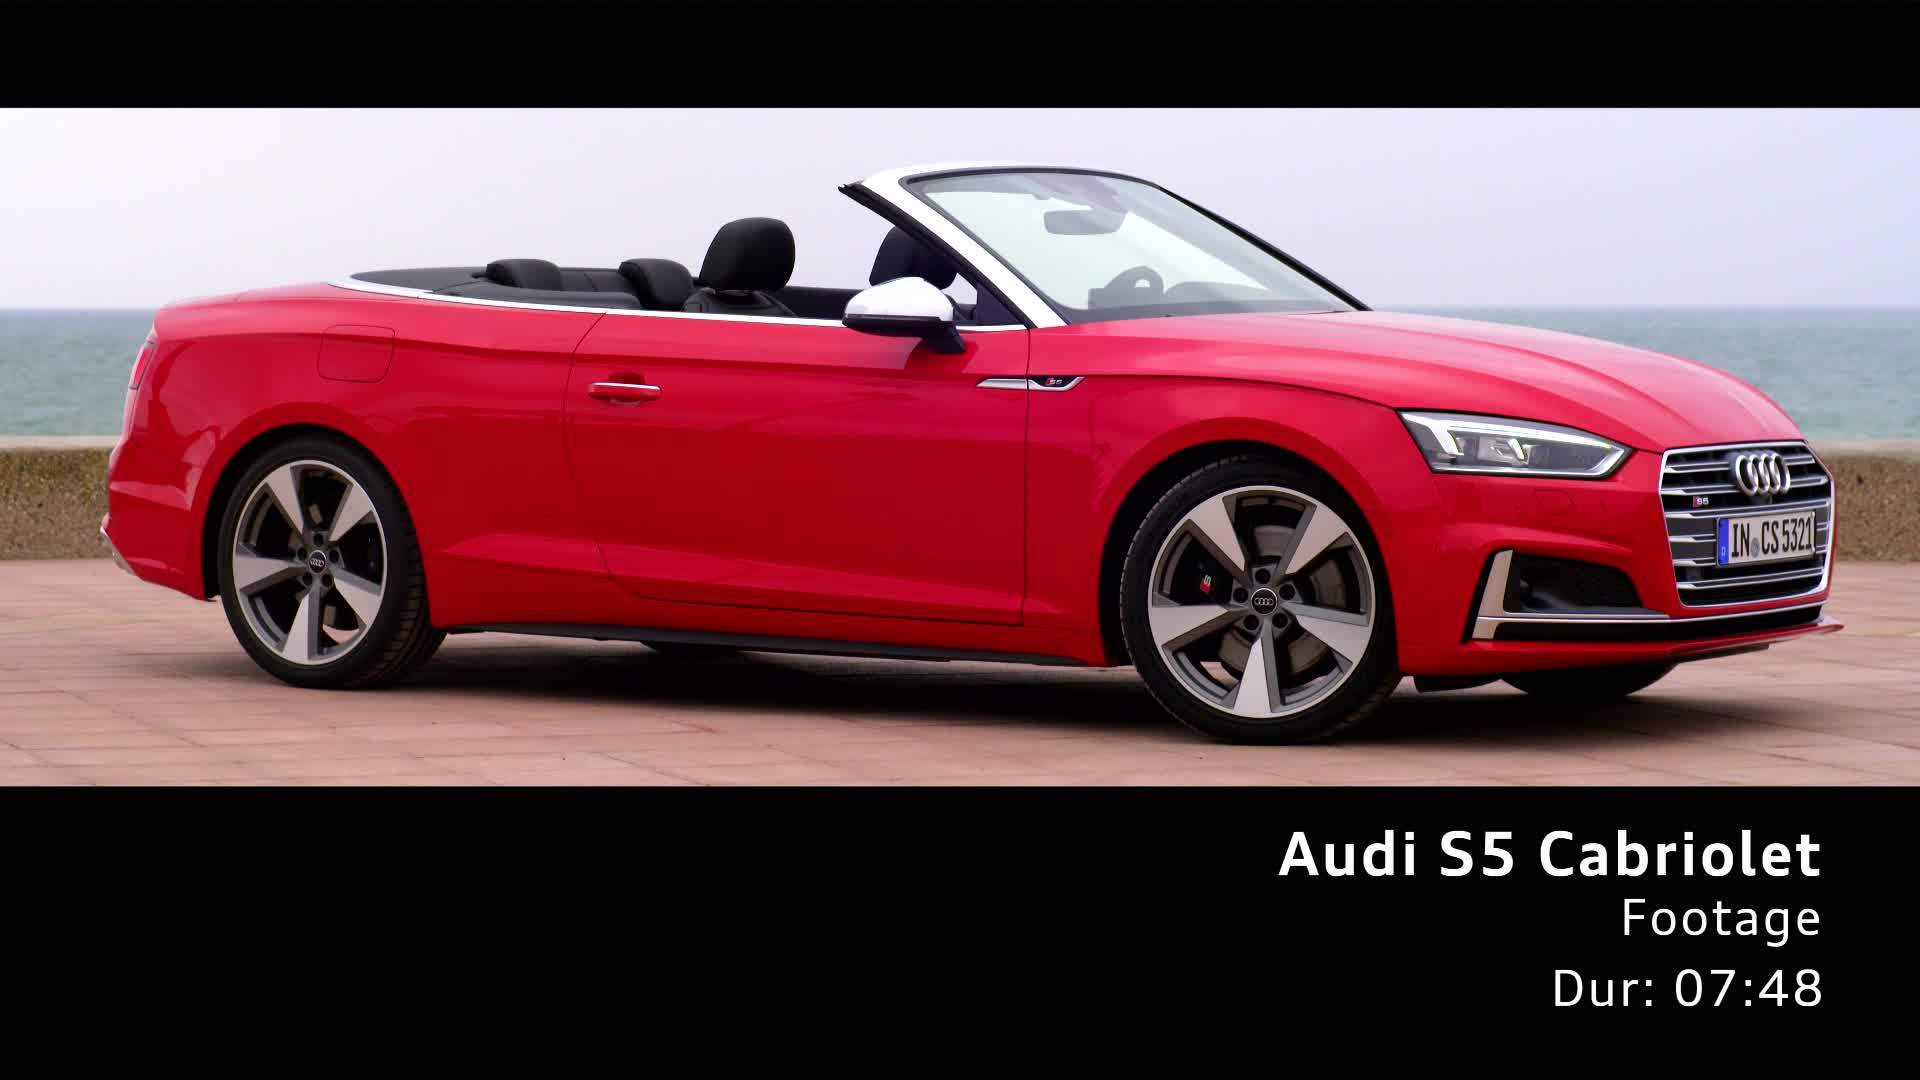 Audi S5 Cabriolet Footage on Location